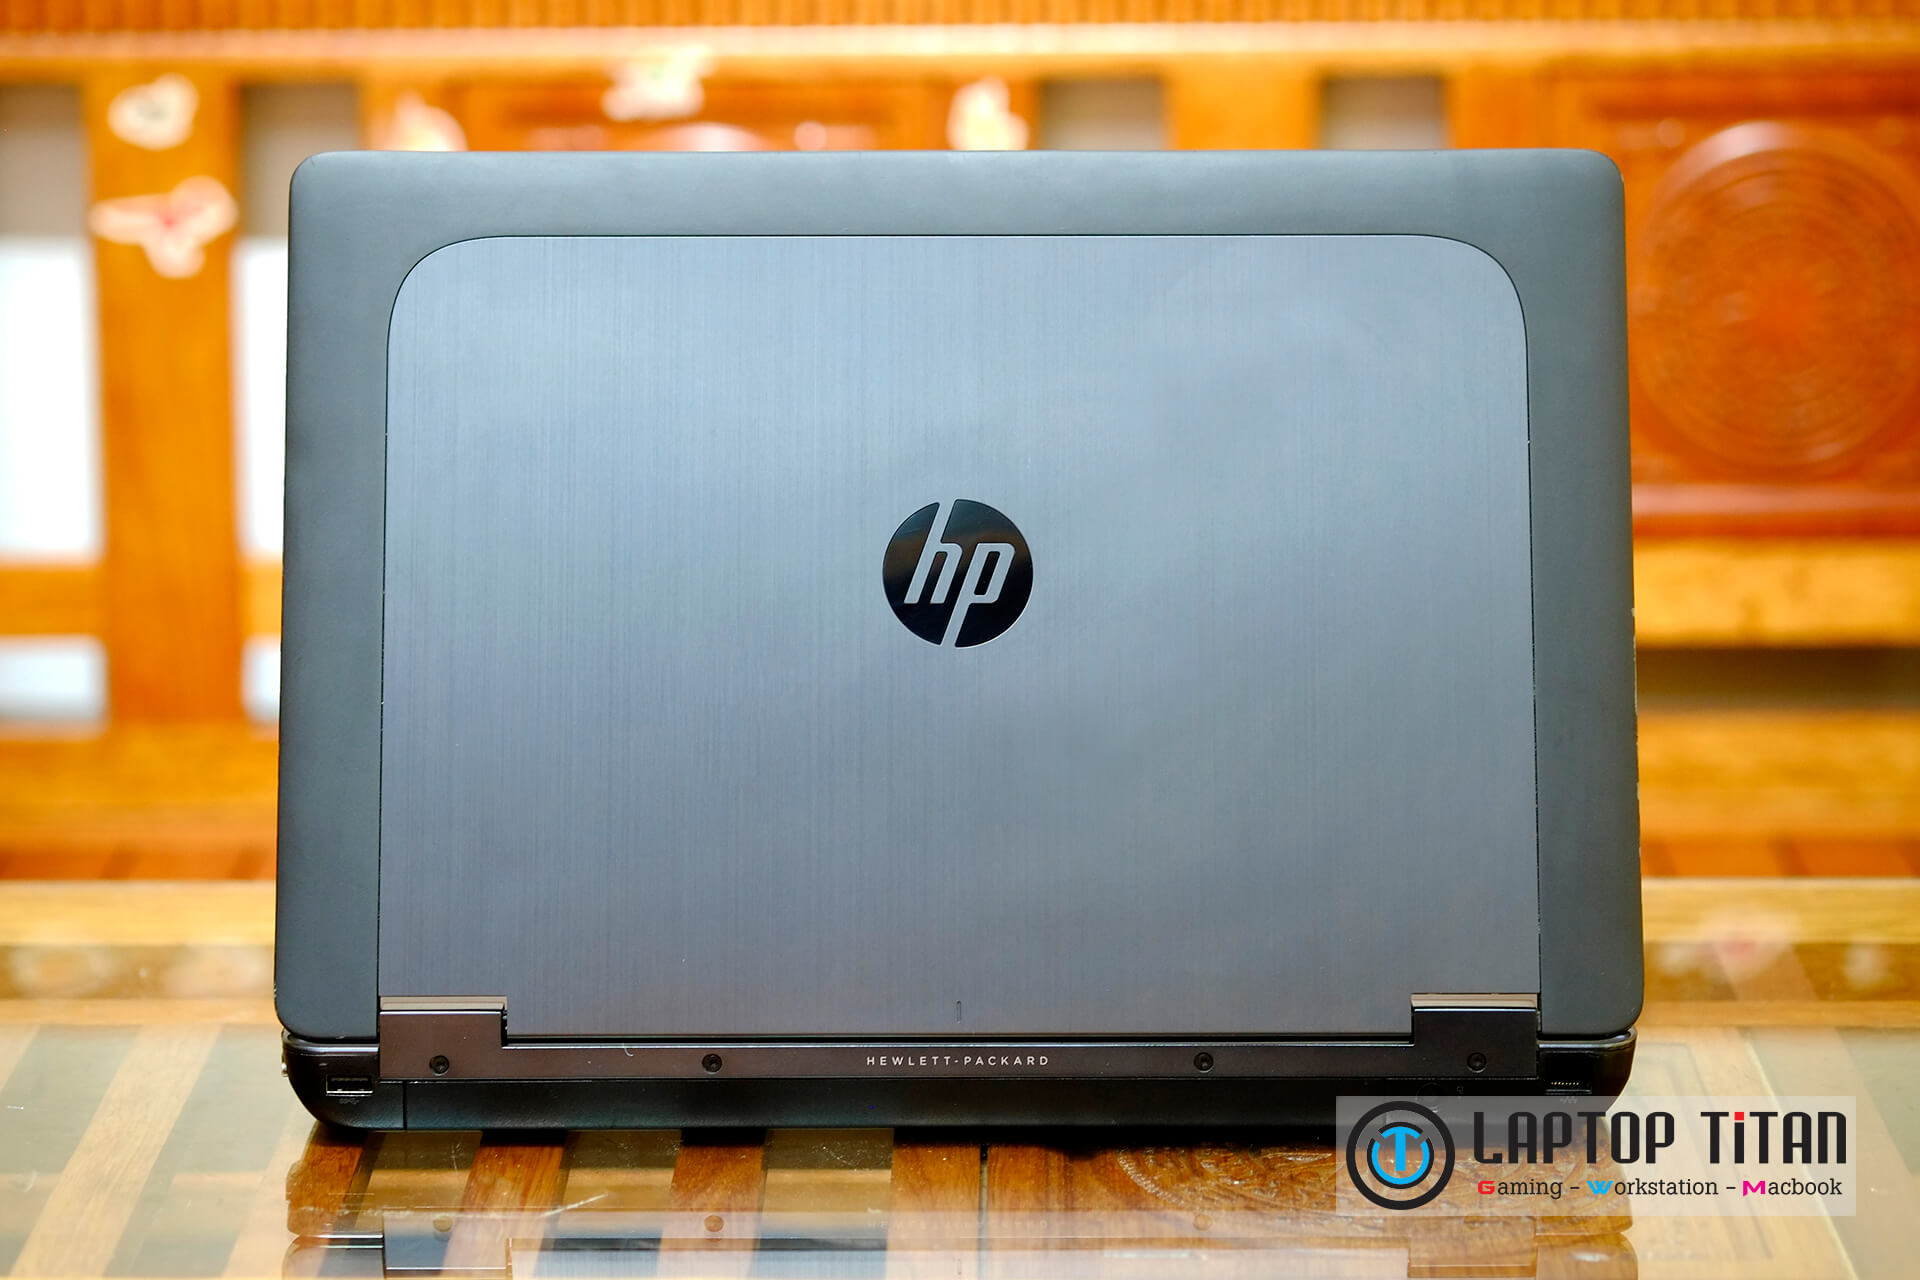 HP Zbook 15 G2 Core i7 4800MQ / 8GB / 128GB + 500GB / nVidia Quadro K1100M / 15. 14827140_HP-Zbook-15-G2-5